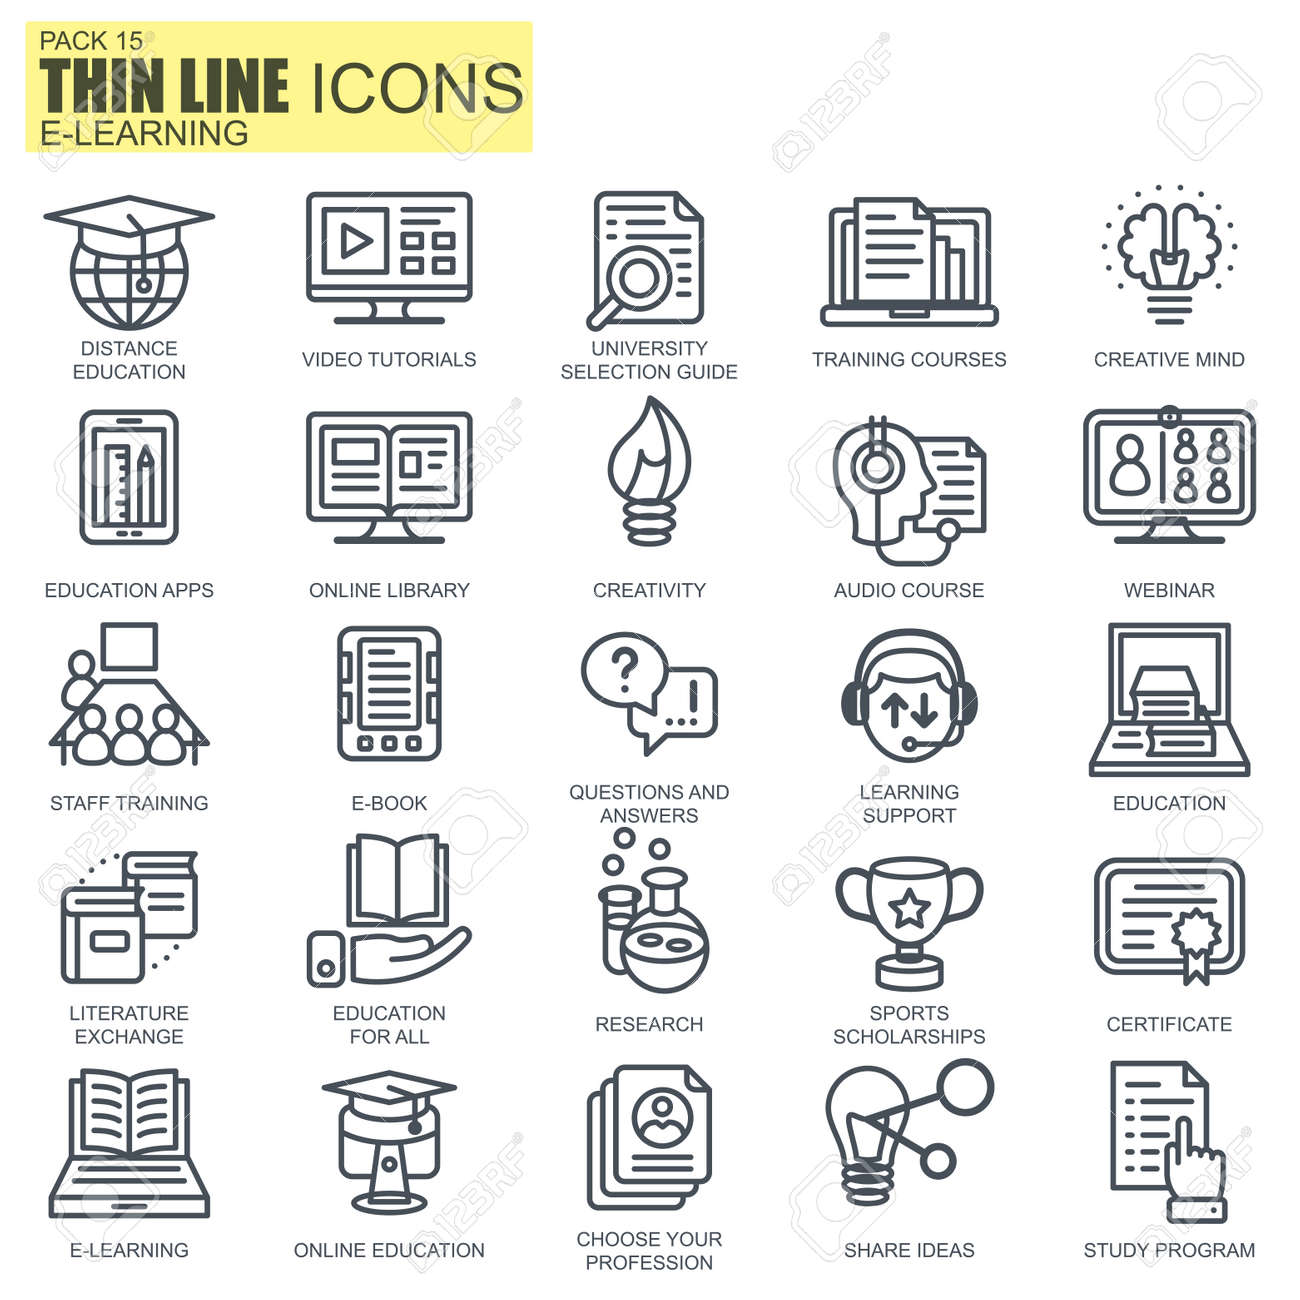 Thin Line Online Education E Learning E Book Icons Set For